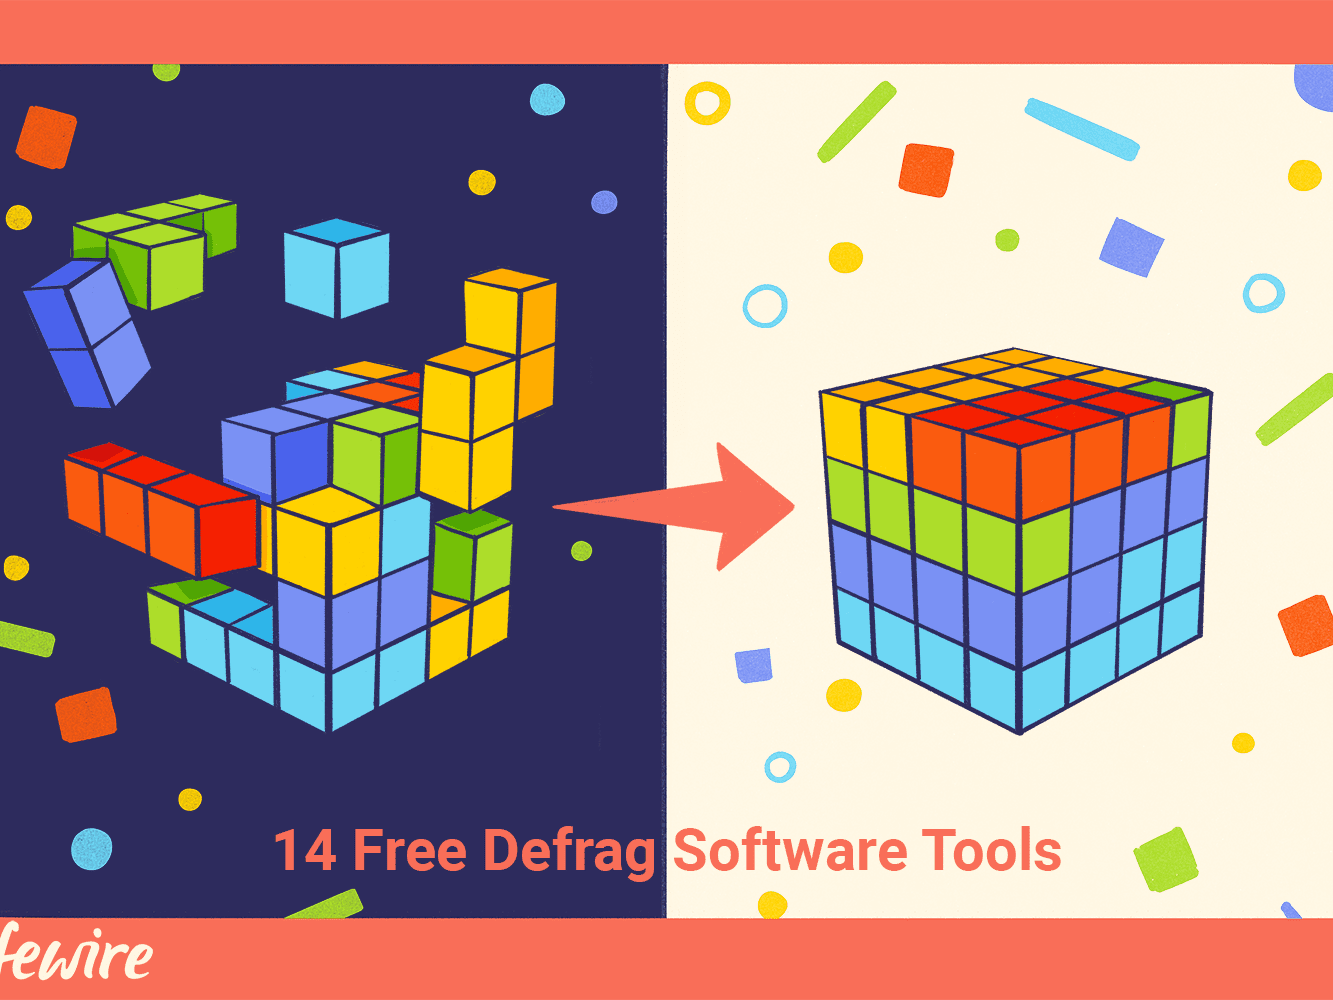 14 Free Defrag Software Tools (Updated August 2019)